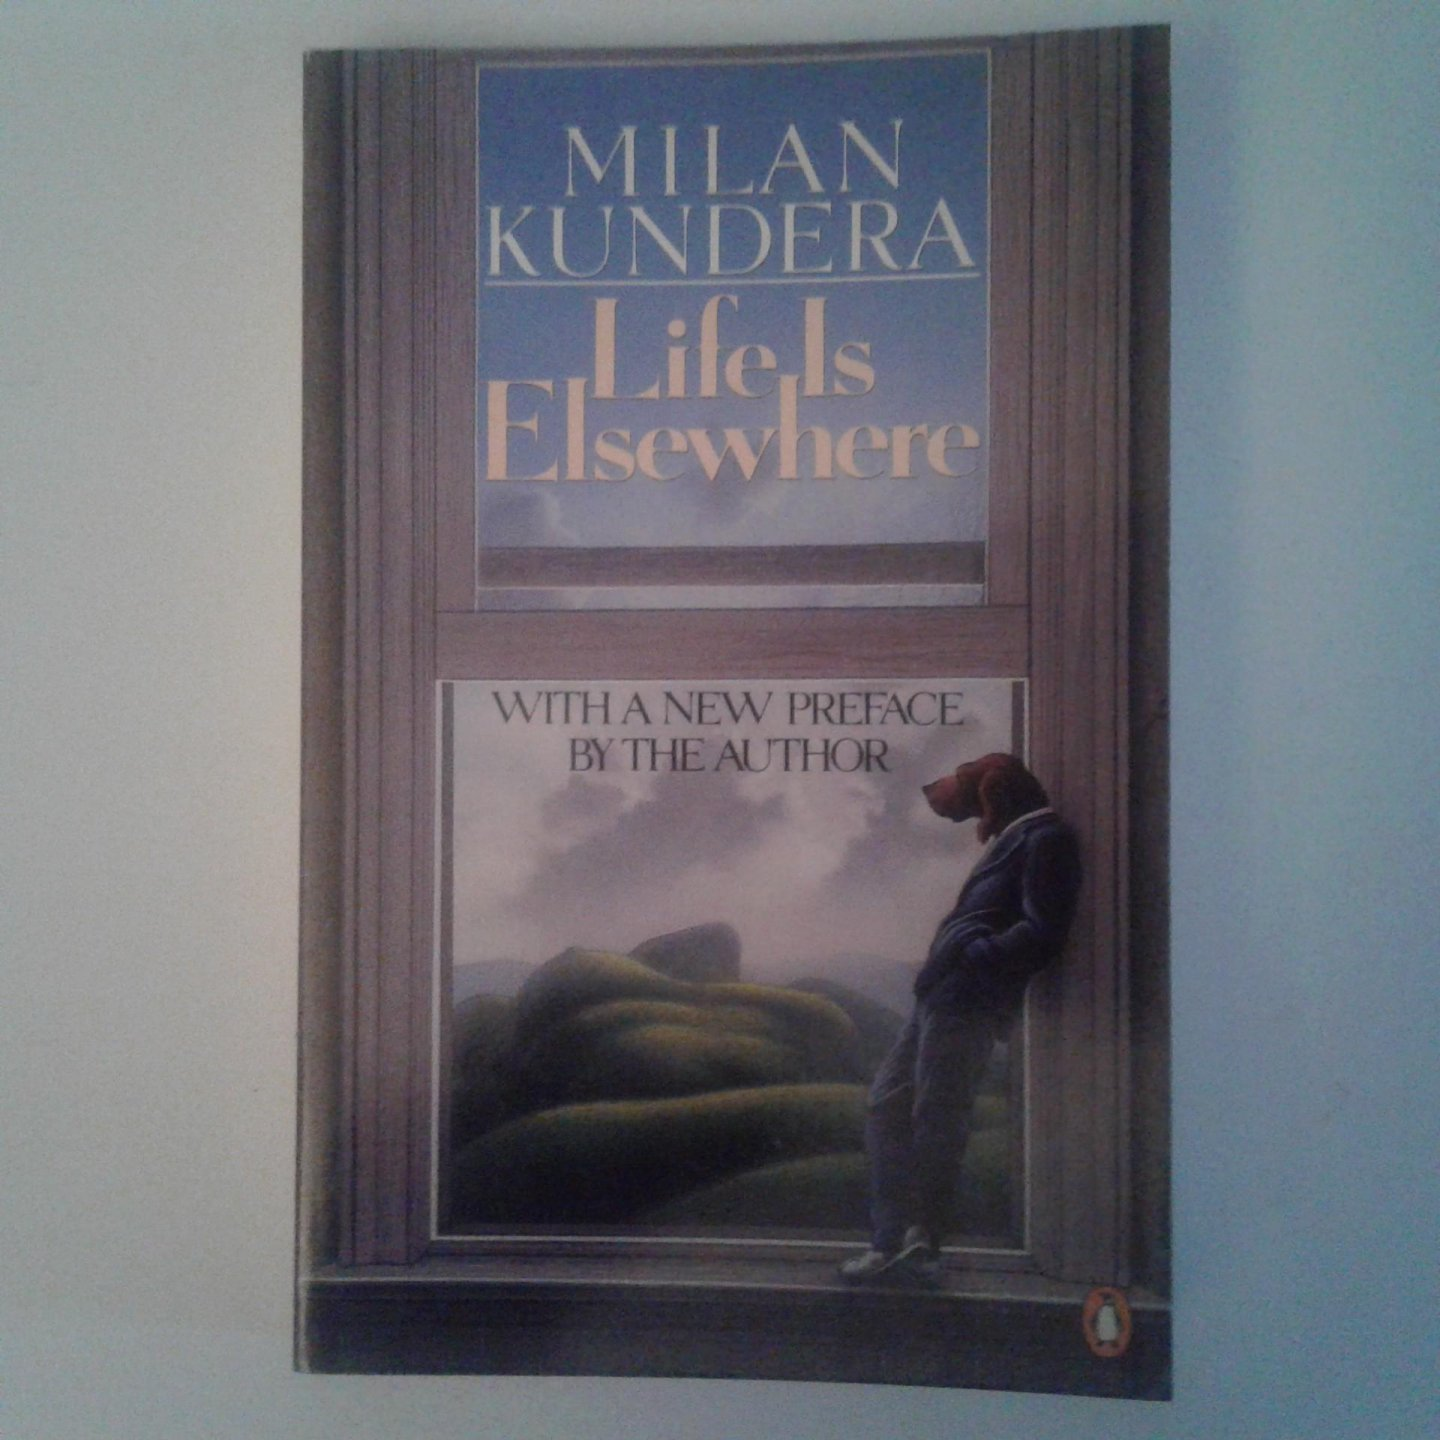 Kundera, Milan - Life is Elsewhere